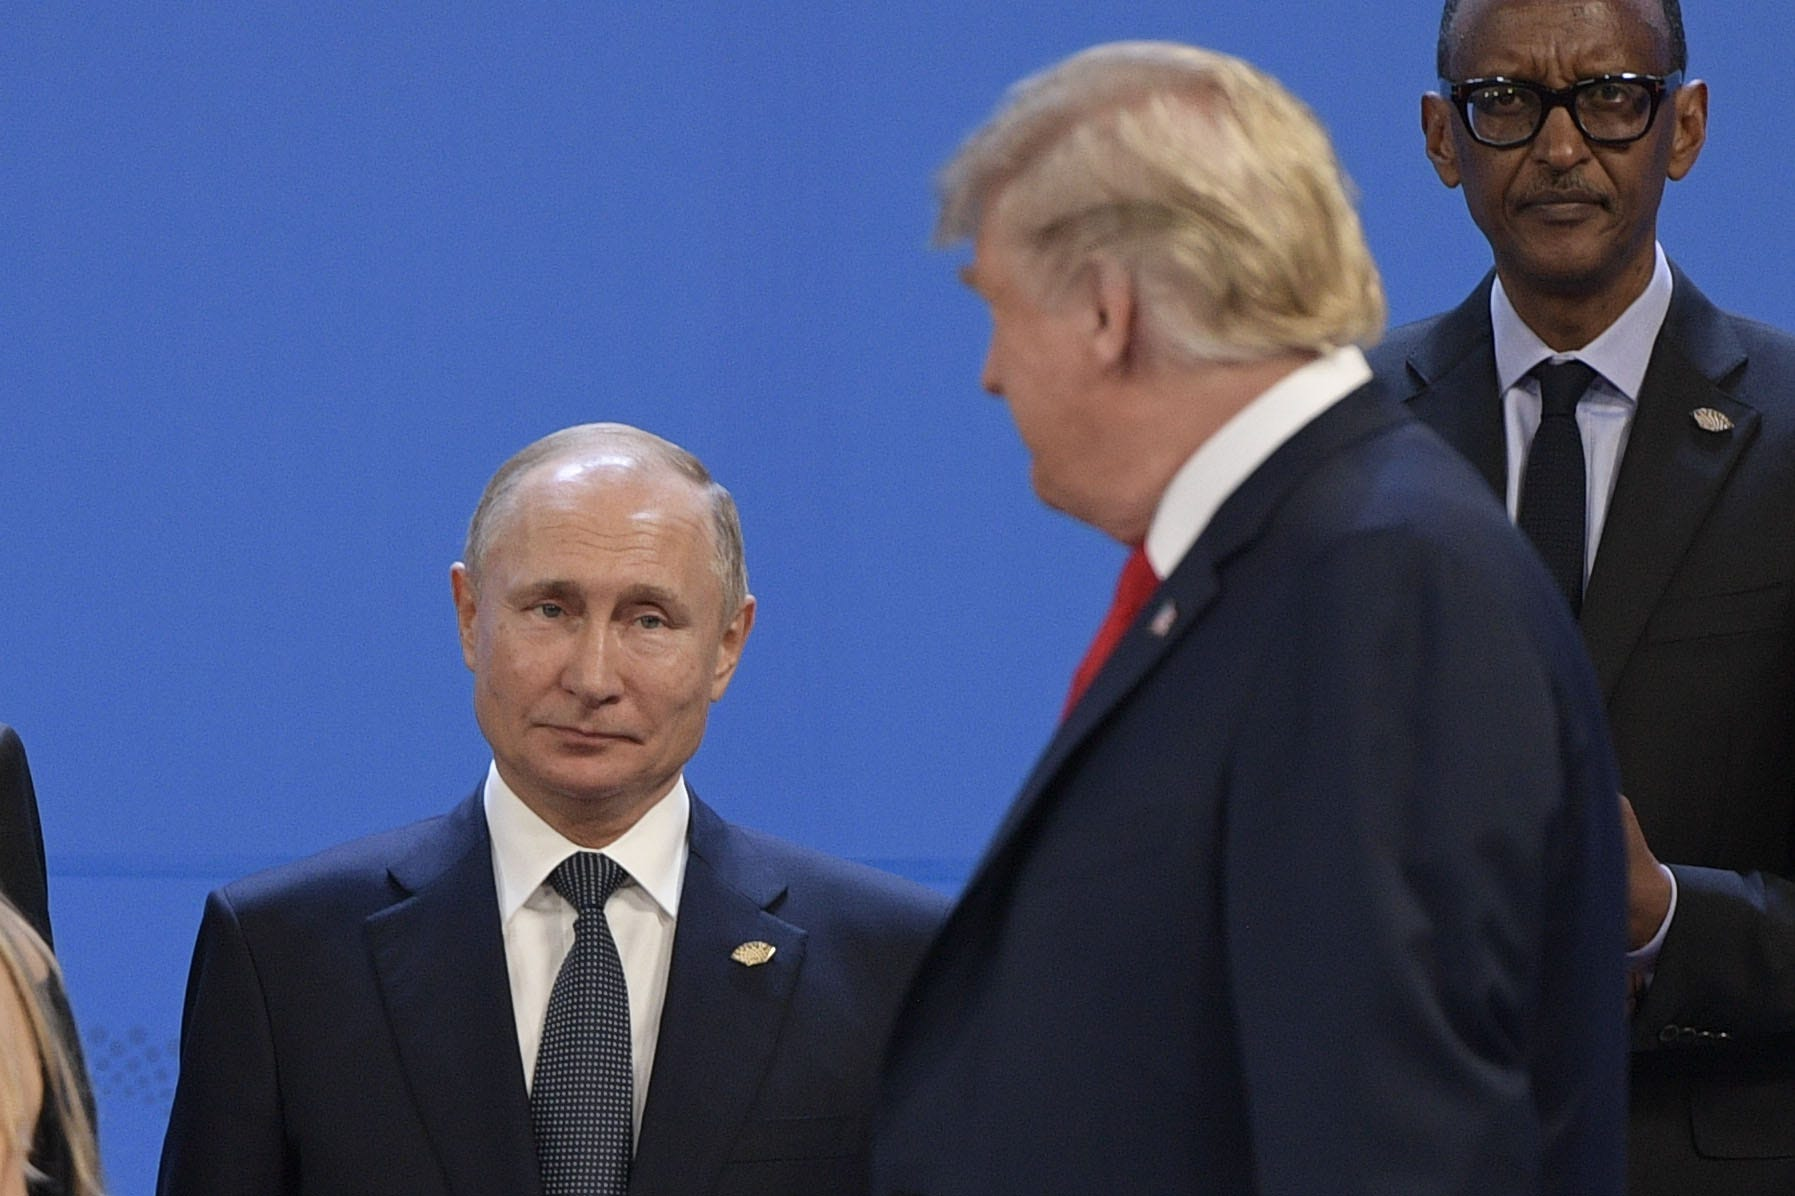 President Donald Trump, right, looks at Russia's President Vladimir Putin as they take place for a family photo, during the G20 Leaders' Summit in Buenos Aires, on Nov. 30, 2018. Global leaders gather in the Argentine capital for a two-day G20 summit beginning on Friday likely to be dominated by simmering international tensions over trade.